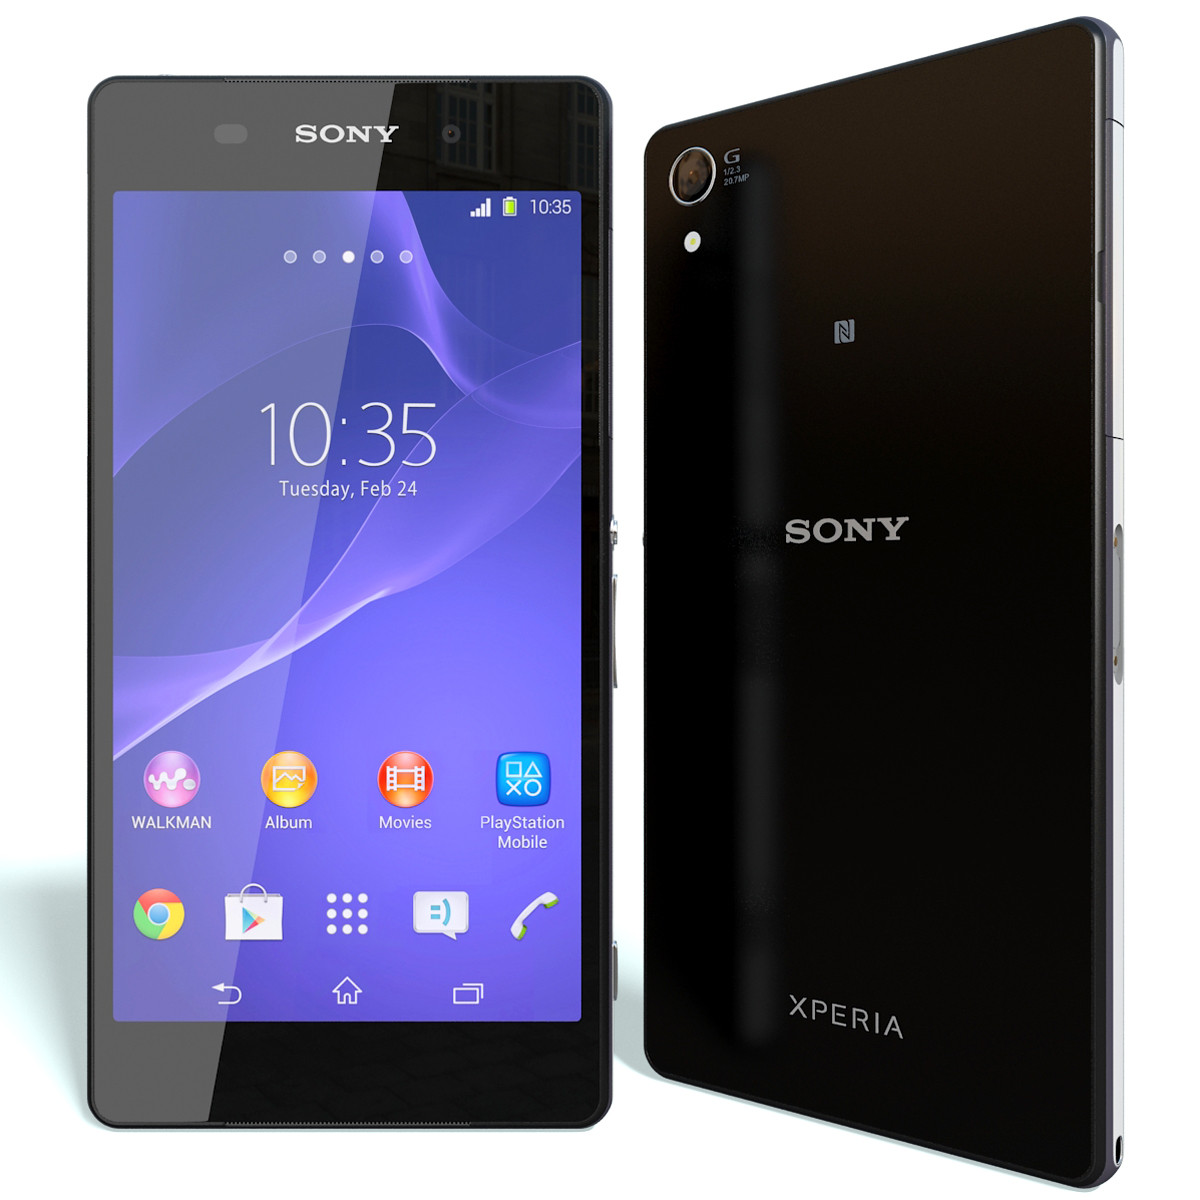 Update Sony Xperia Z2 to Android 8.0 Oreo ROM via CypherOS